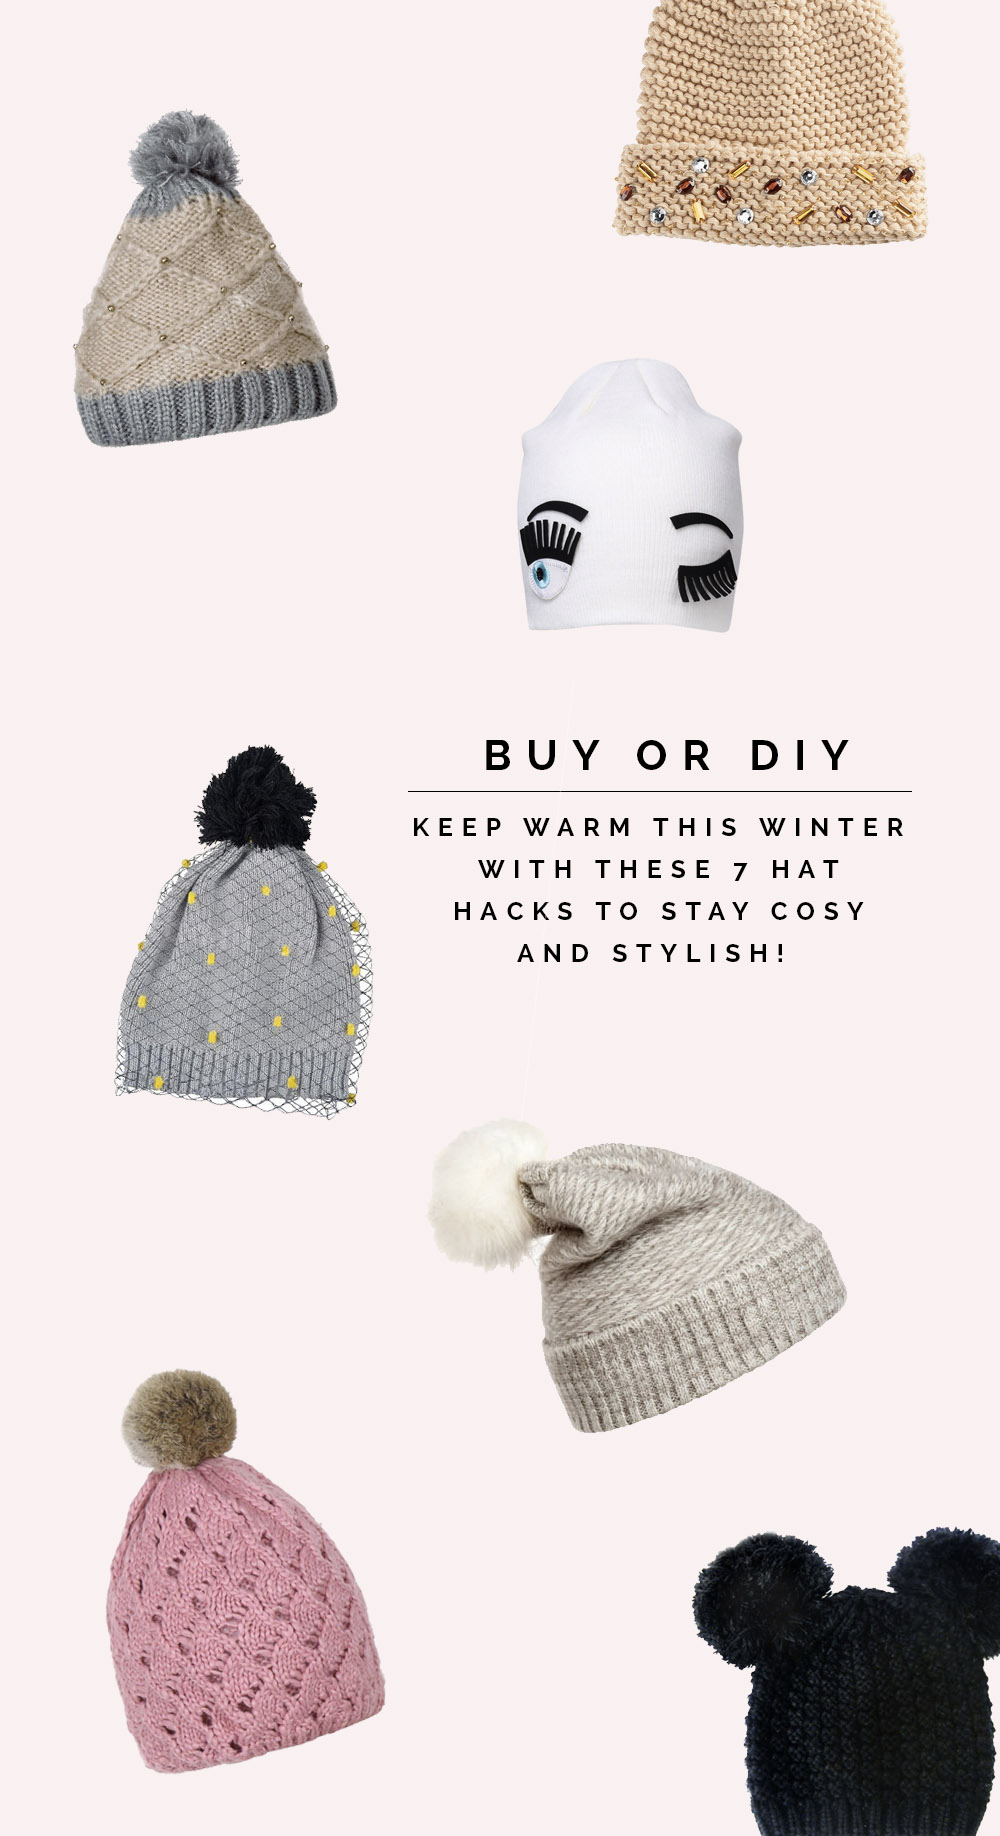 Buy or DIY 7 Stylish winter hat hacks